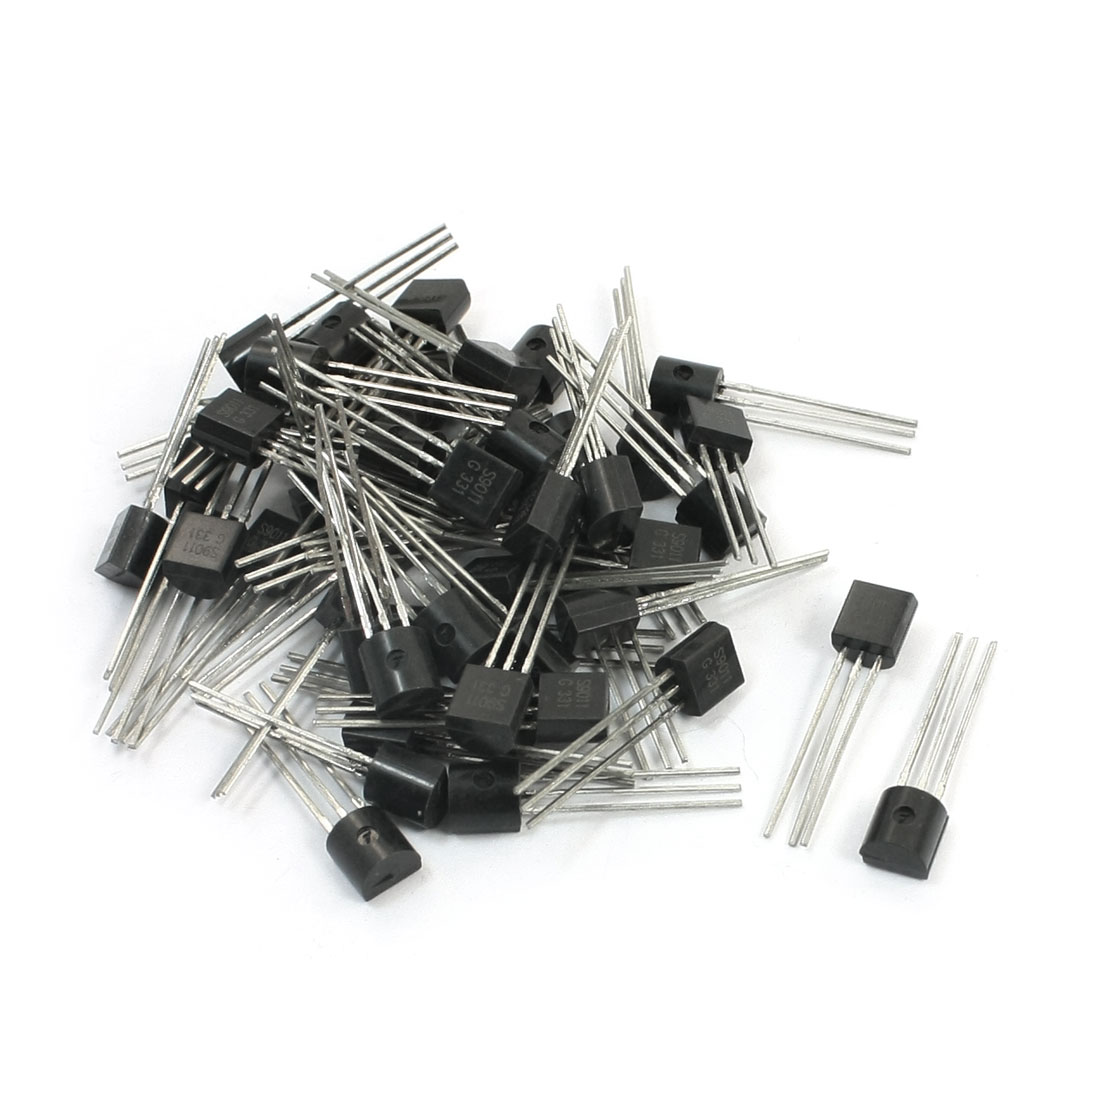 50PCS Electric Component S9011 35V 50mA TO-92 PNP Transistor